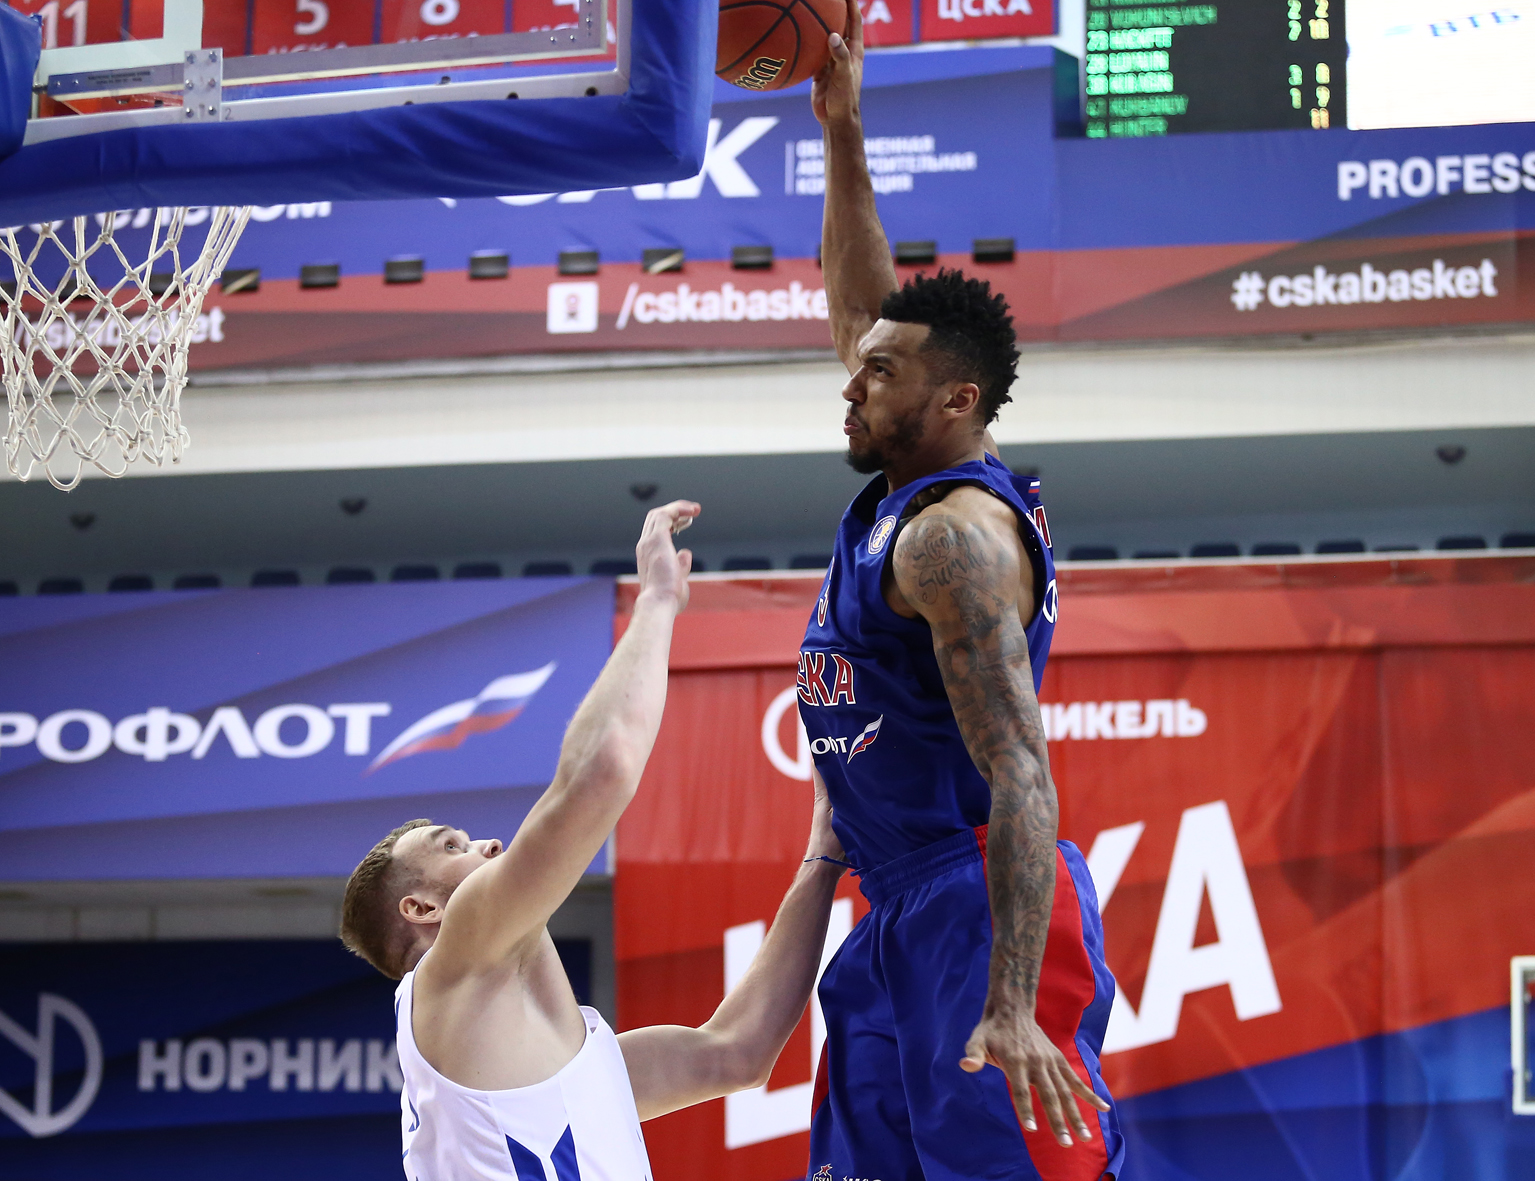 CSKA Puts Away Enisey Behind Bolomboy's Big Debut